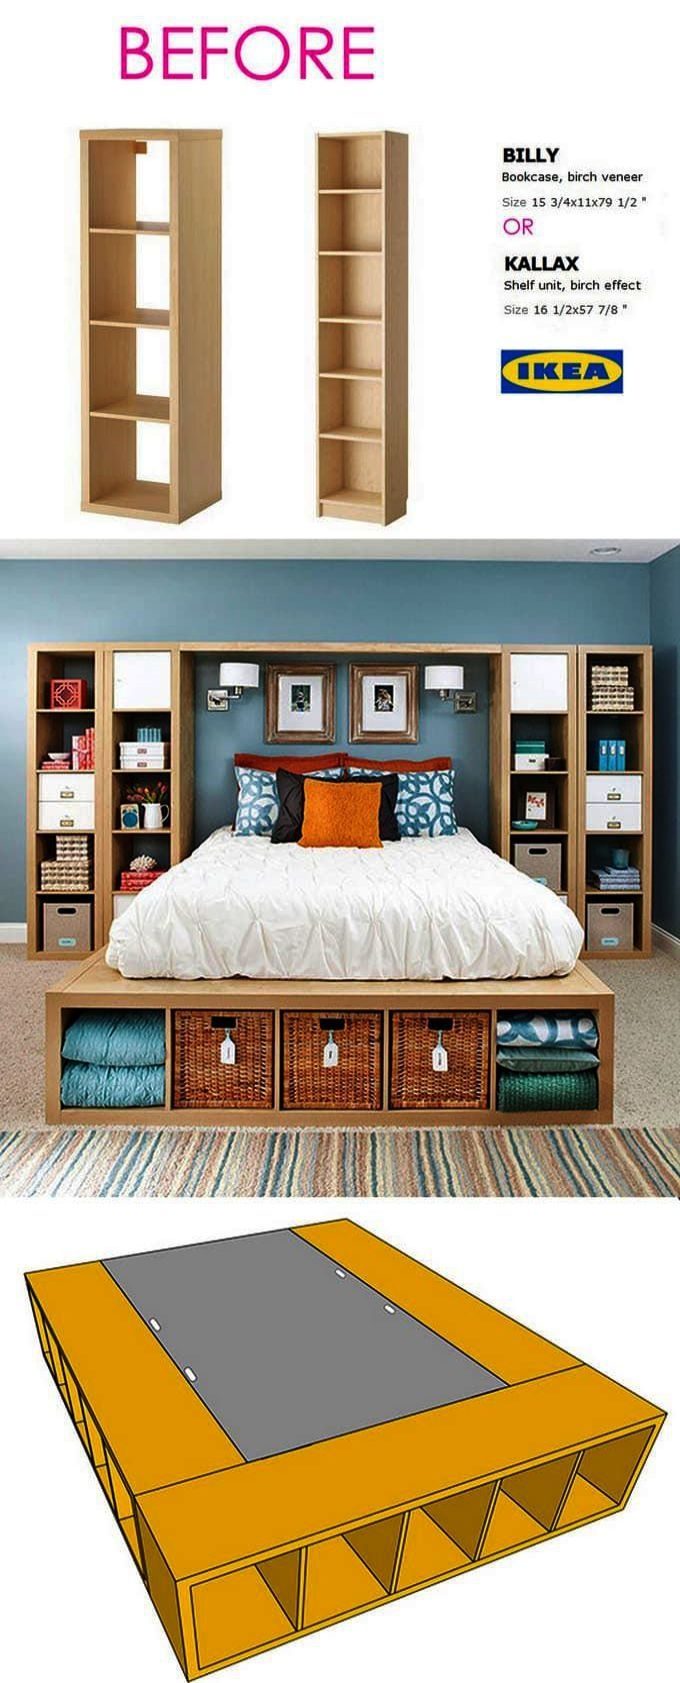 Wondrous Furniture Online Shopping On Extraordinary Bedroom Furniture Stores Mississauga Beyond Furniture Line On Furniture Online Shopping